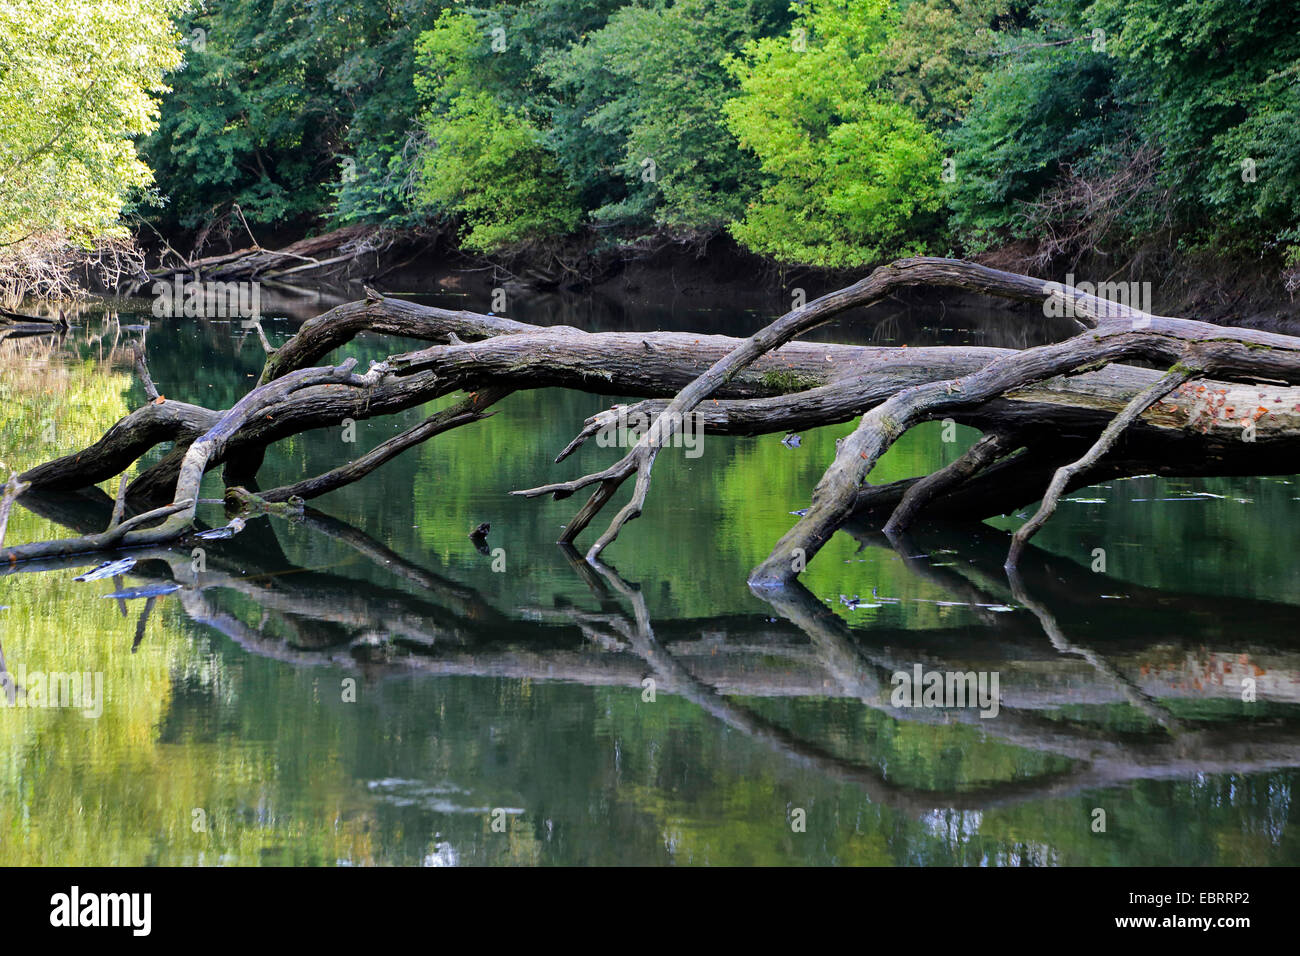 floodplain forest with dead fallen tree in the summer, Germany - Stock Image